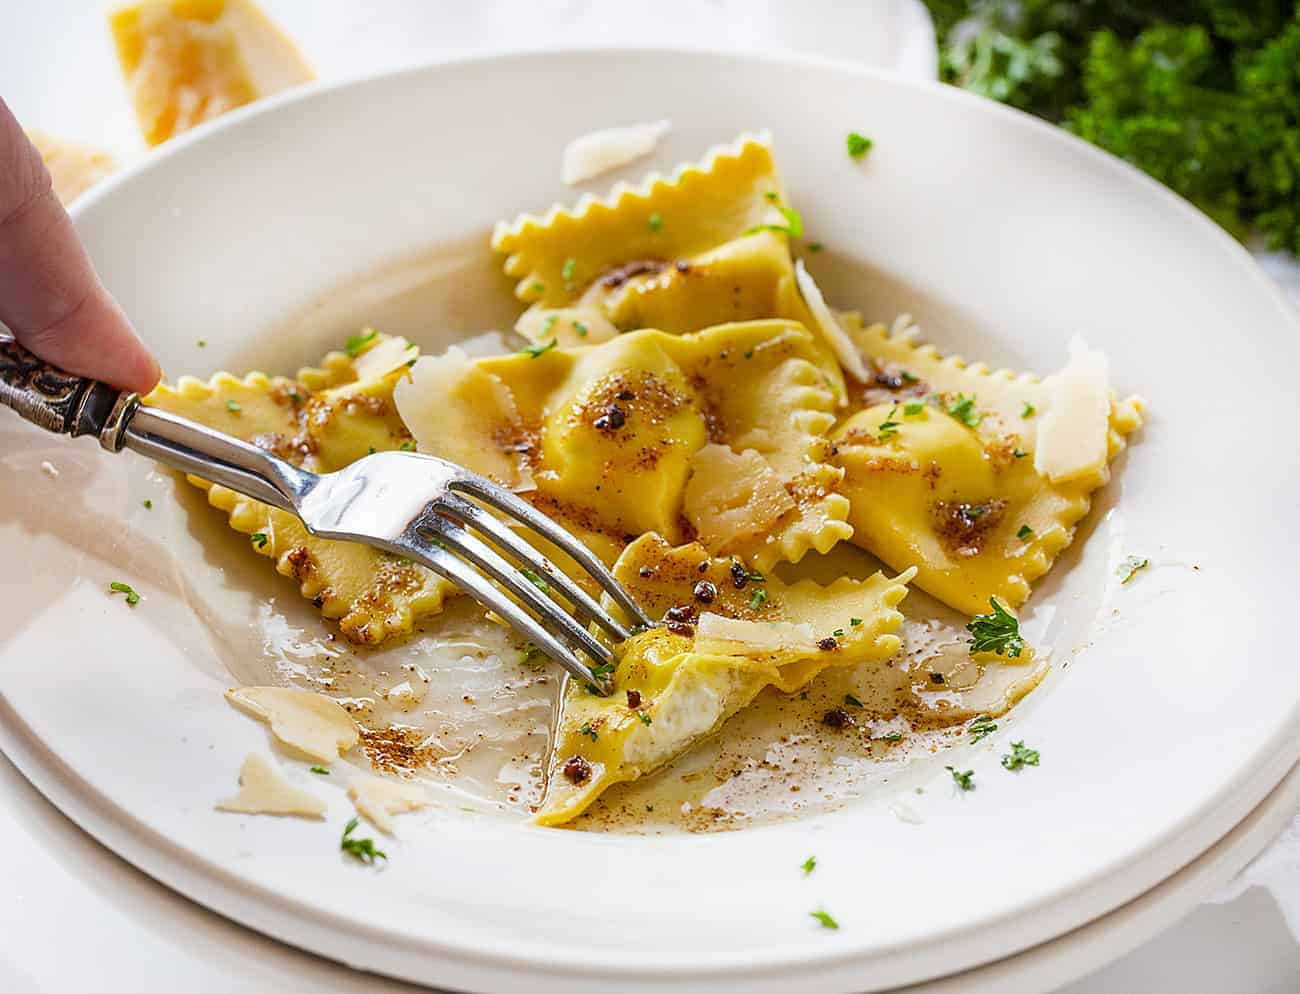 Cut into Piece of Homemade Five Cheese Ravioli Showing the Cheese Filling